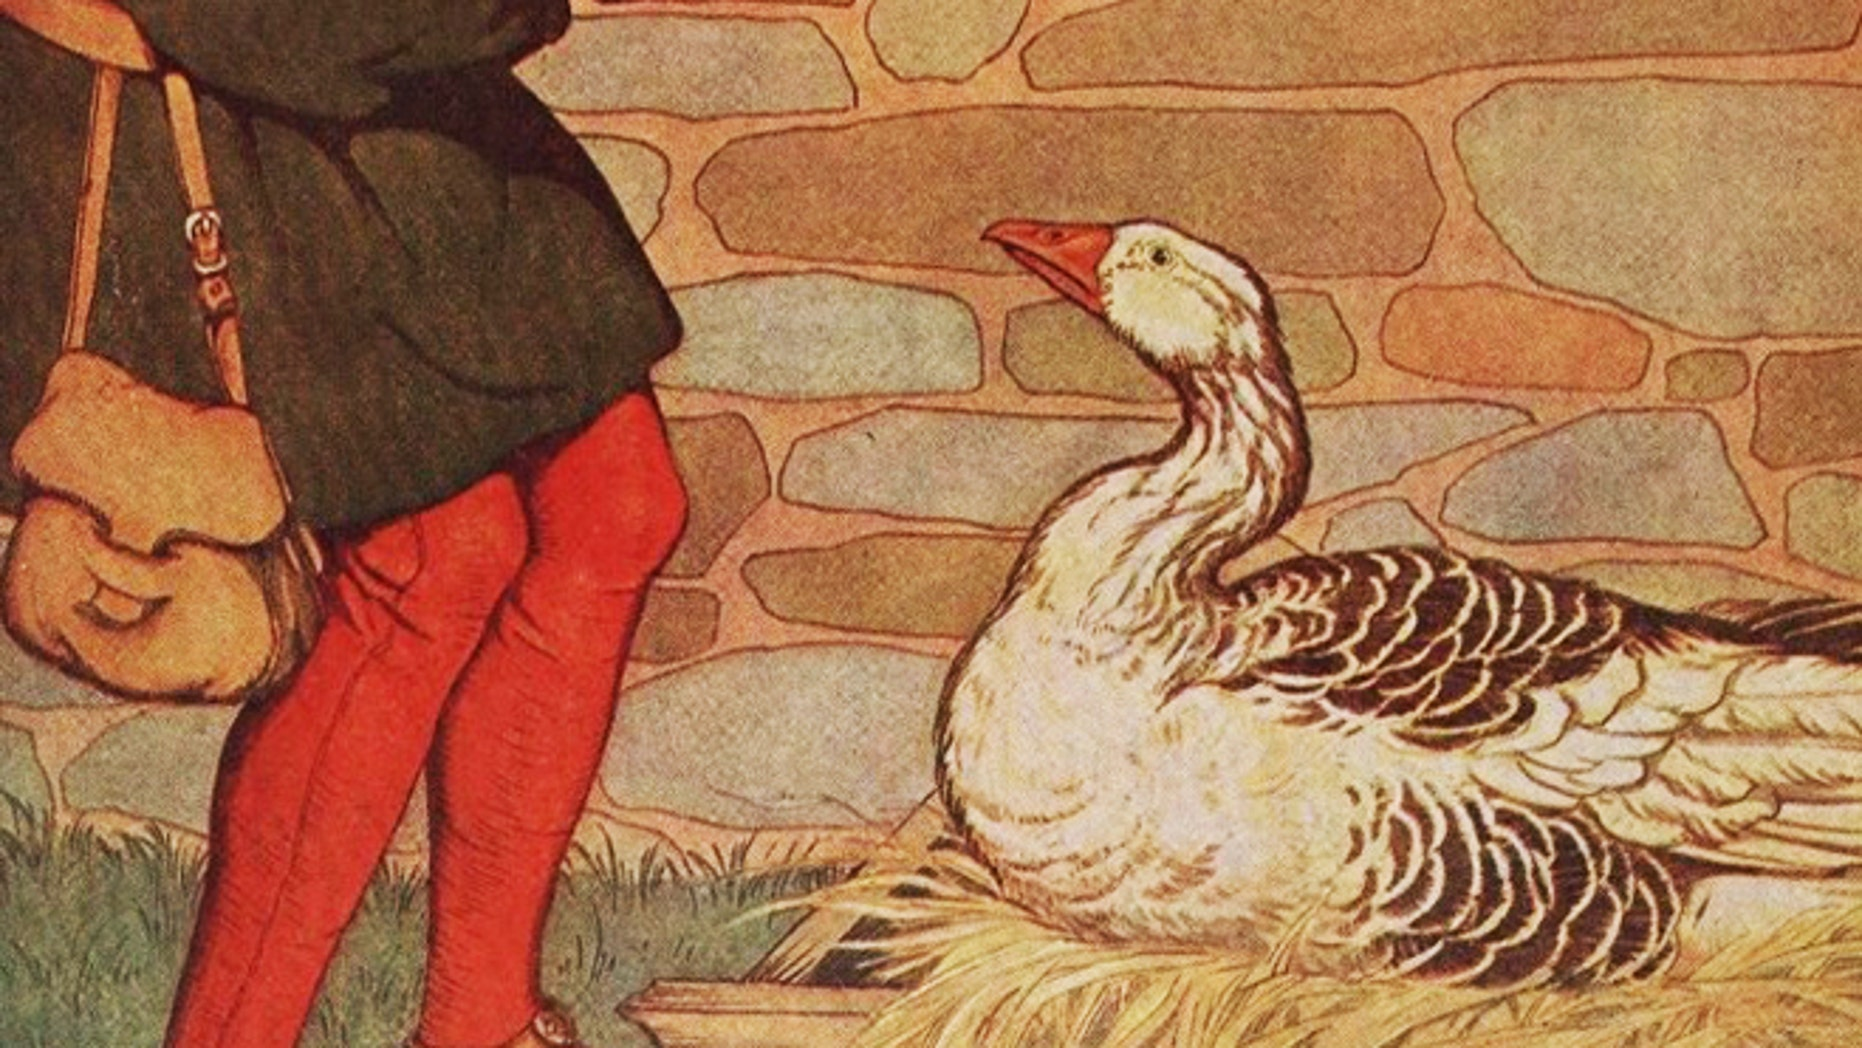 """The Golden Goose Awards, in part, allude to the fable """"The Goose That Laid Golden Eggs."""""""